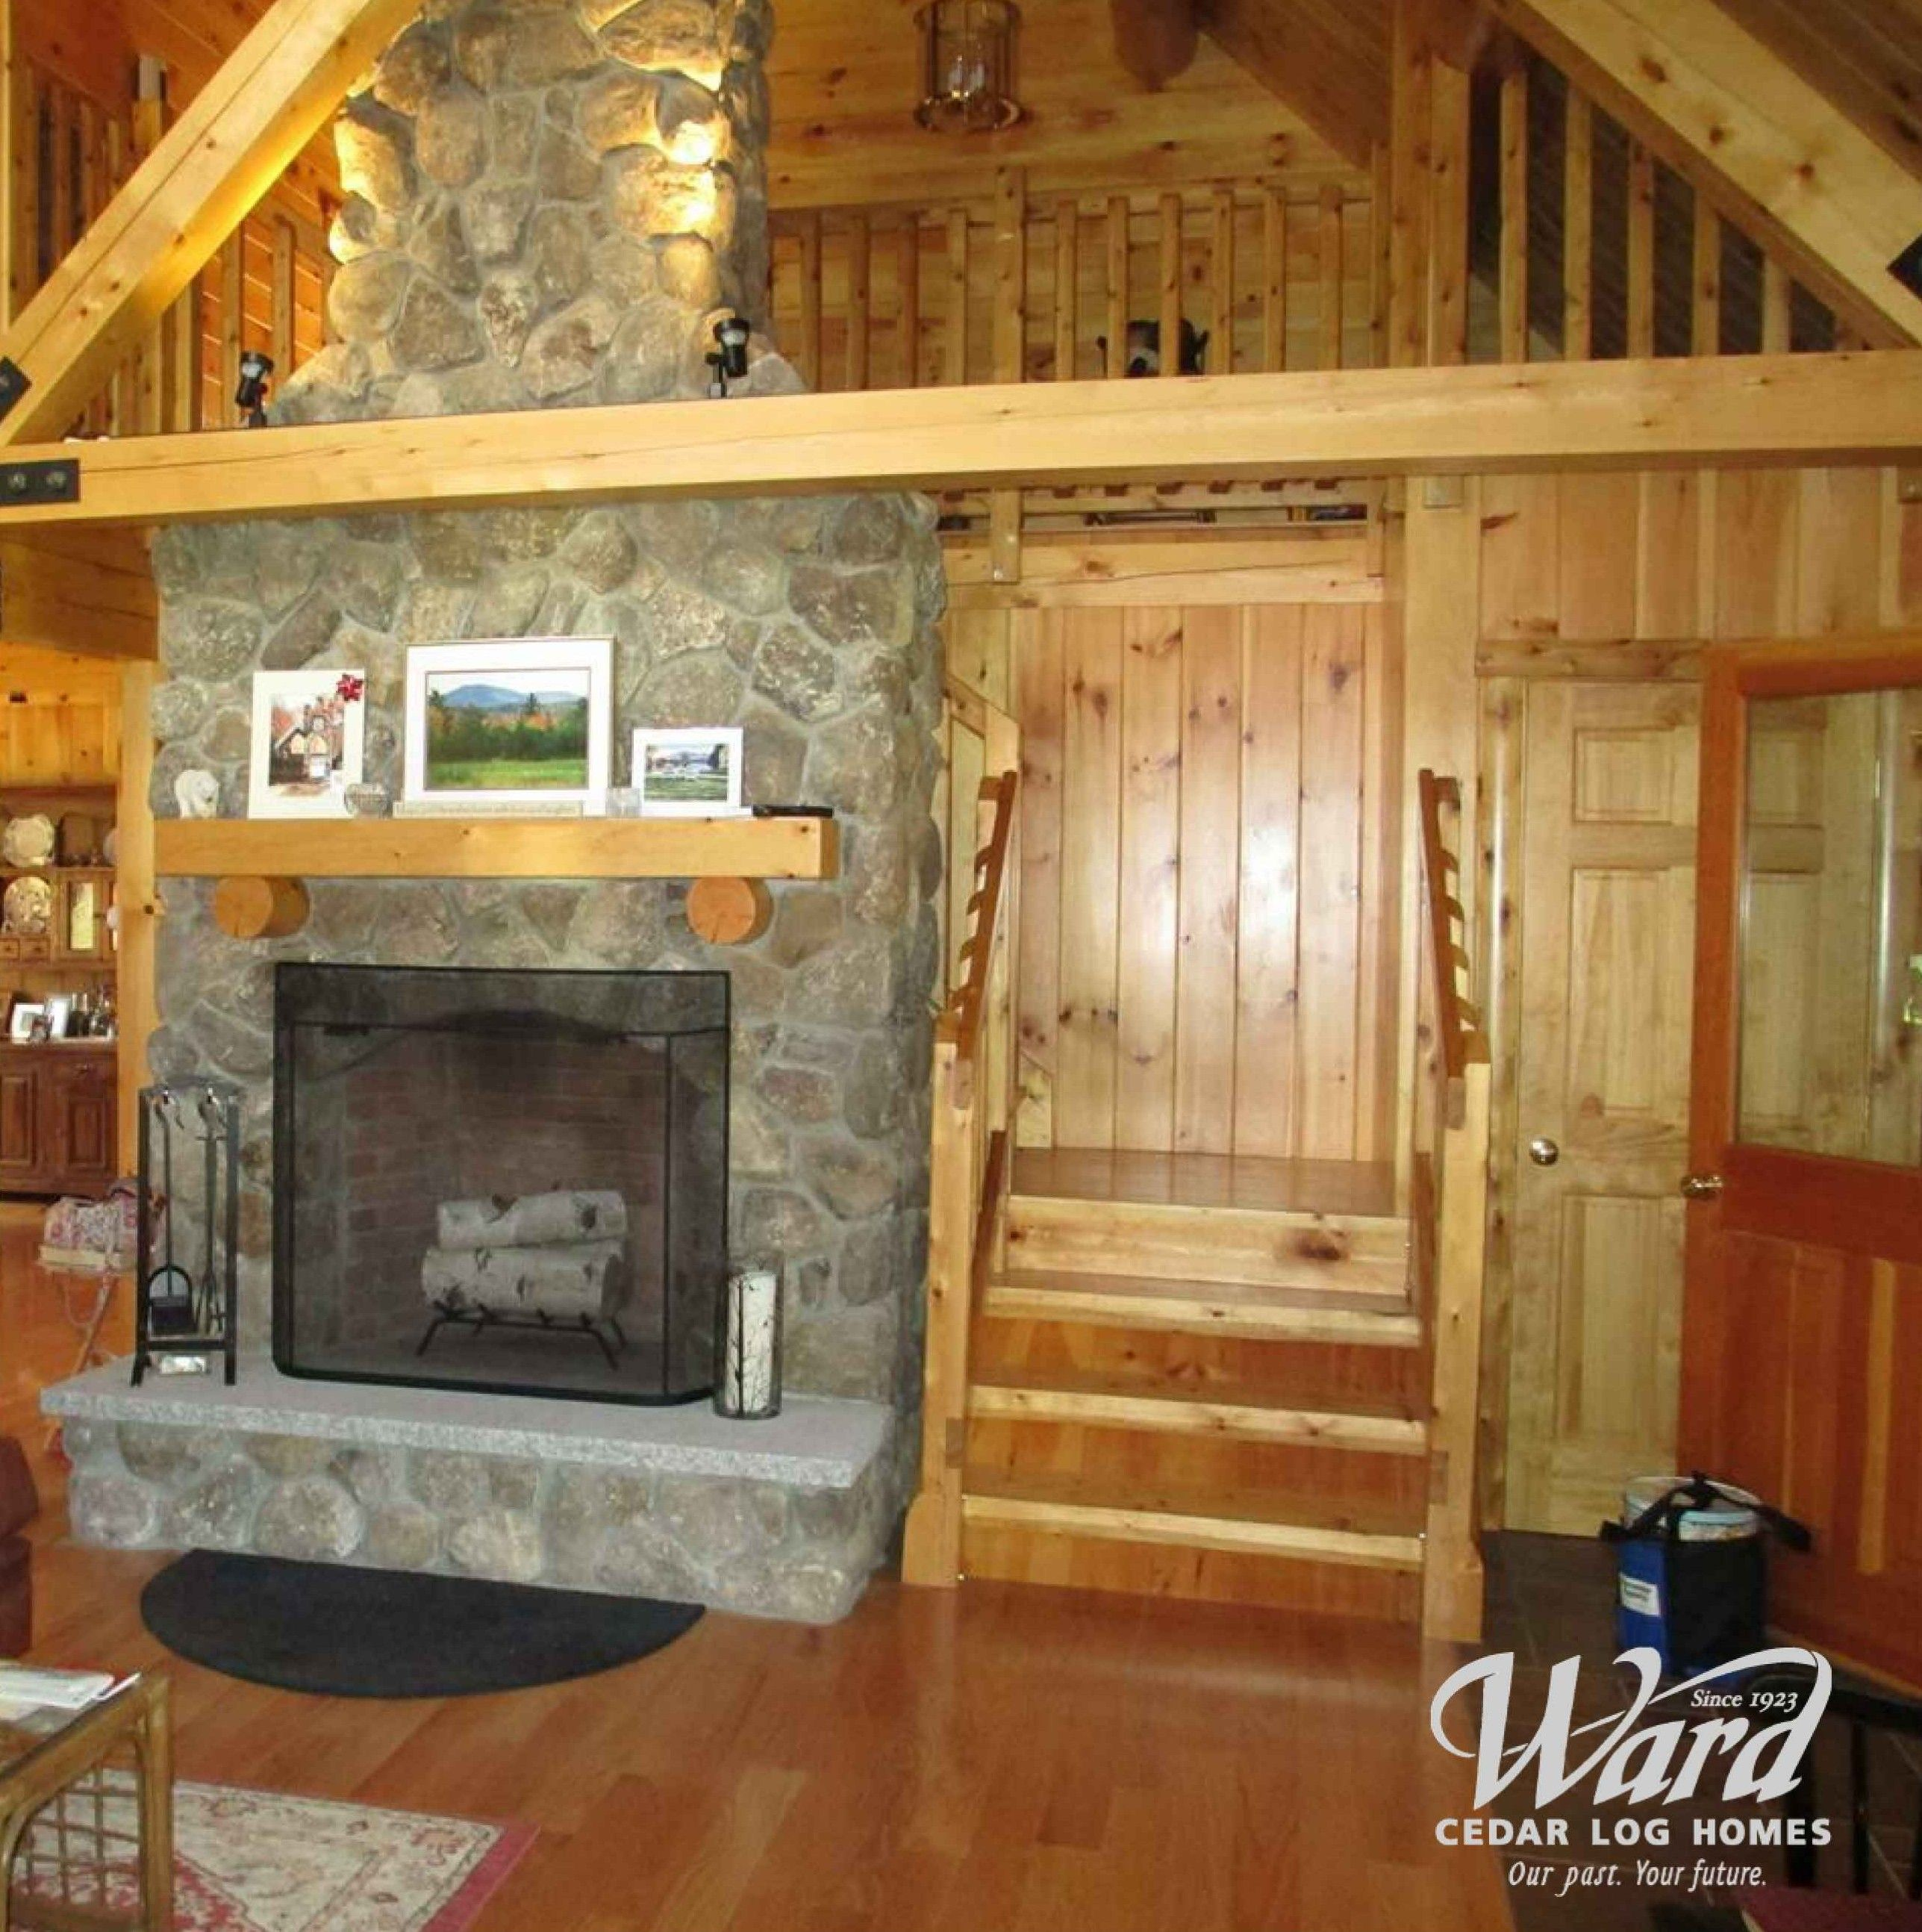 perfect spot to put a fireplace in the center of the home with the